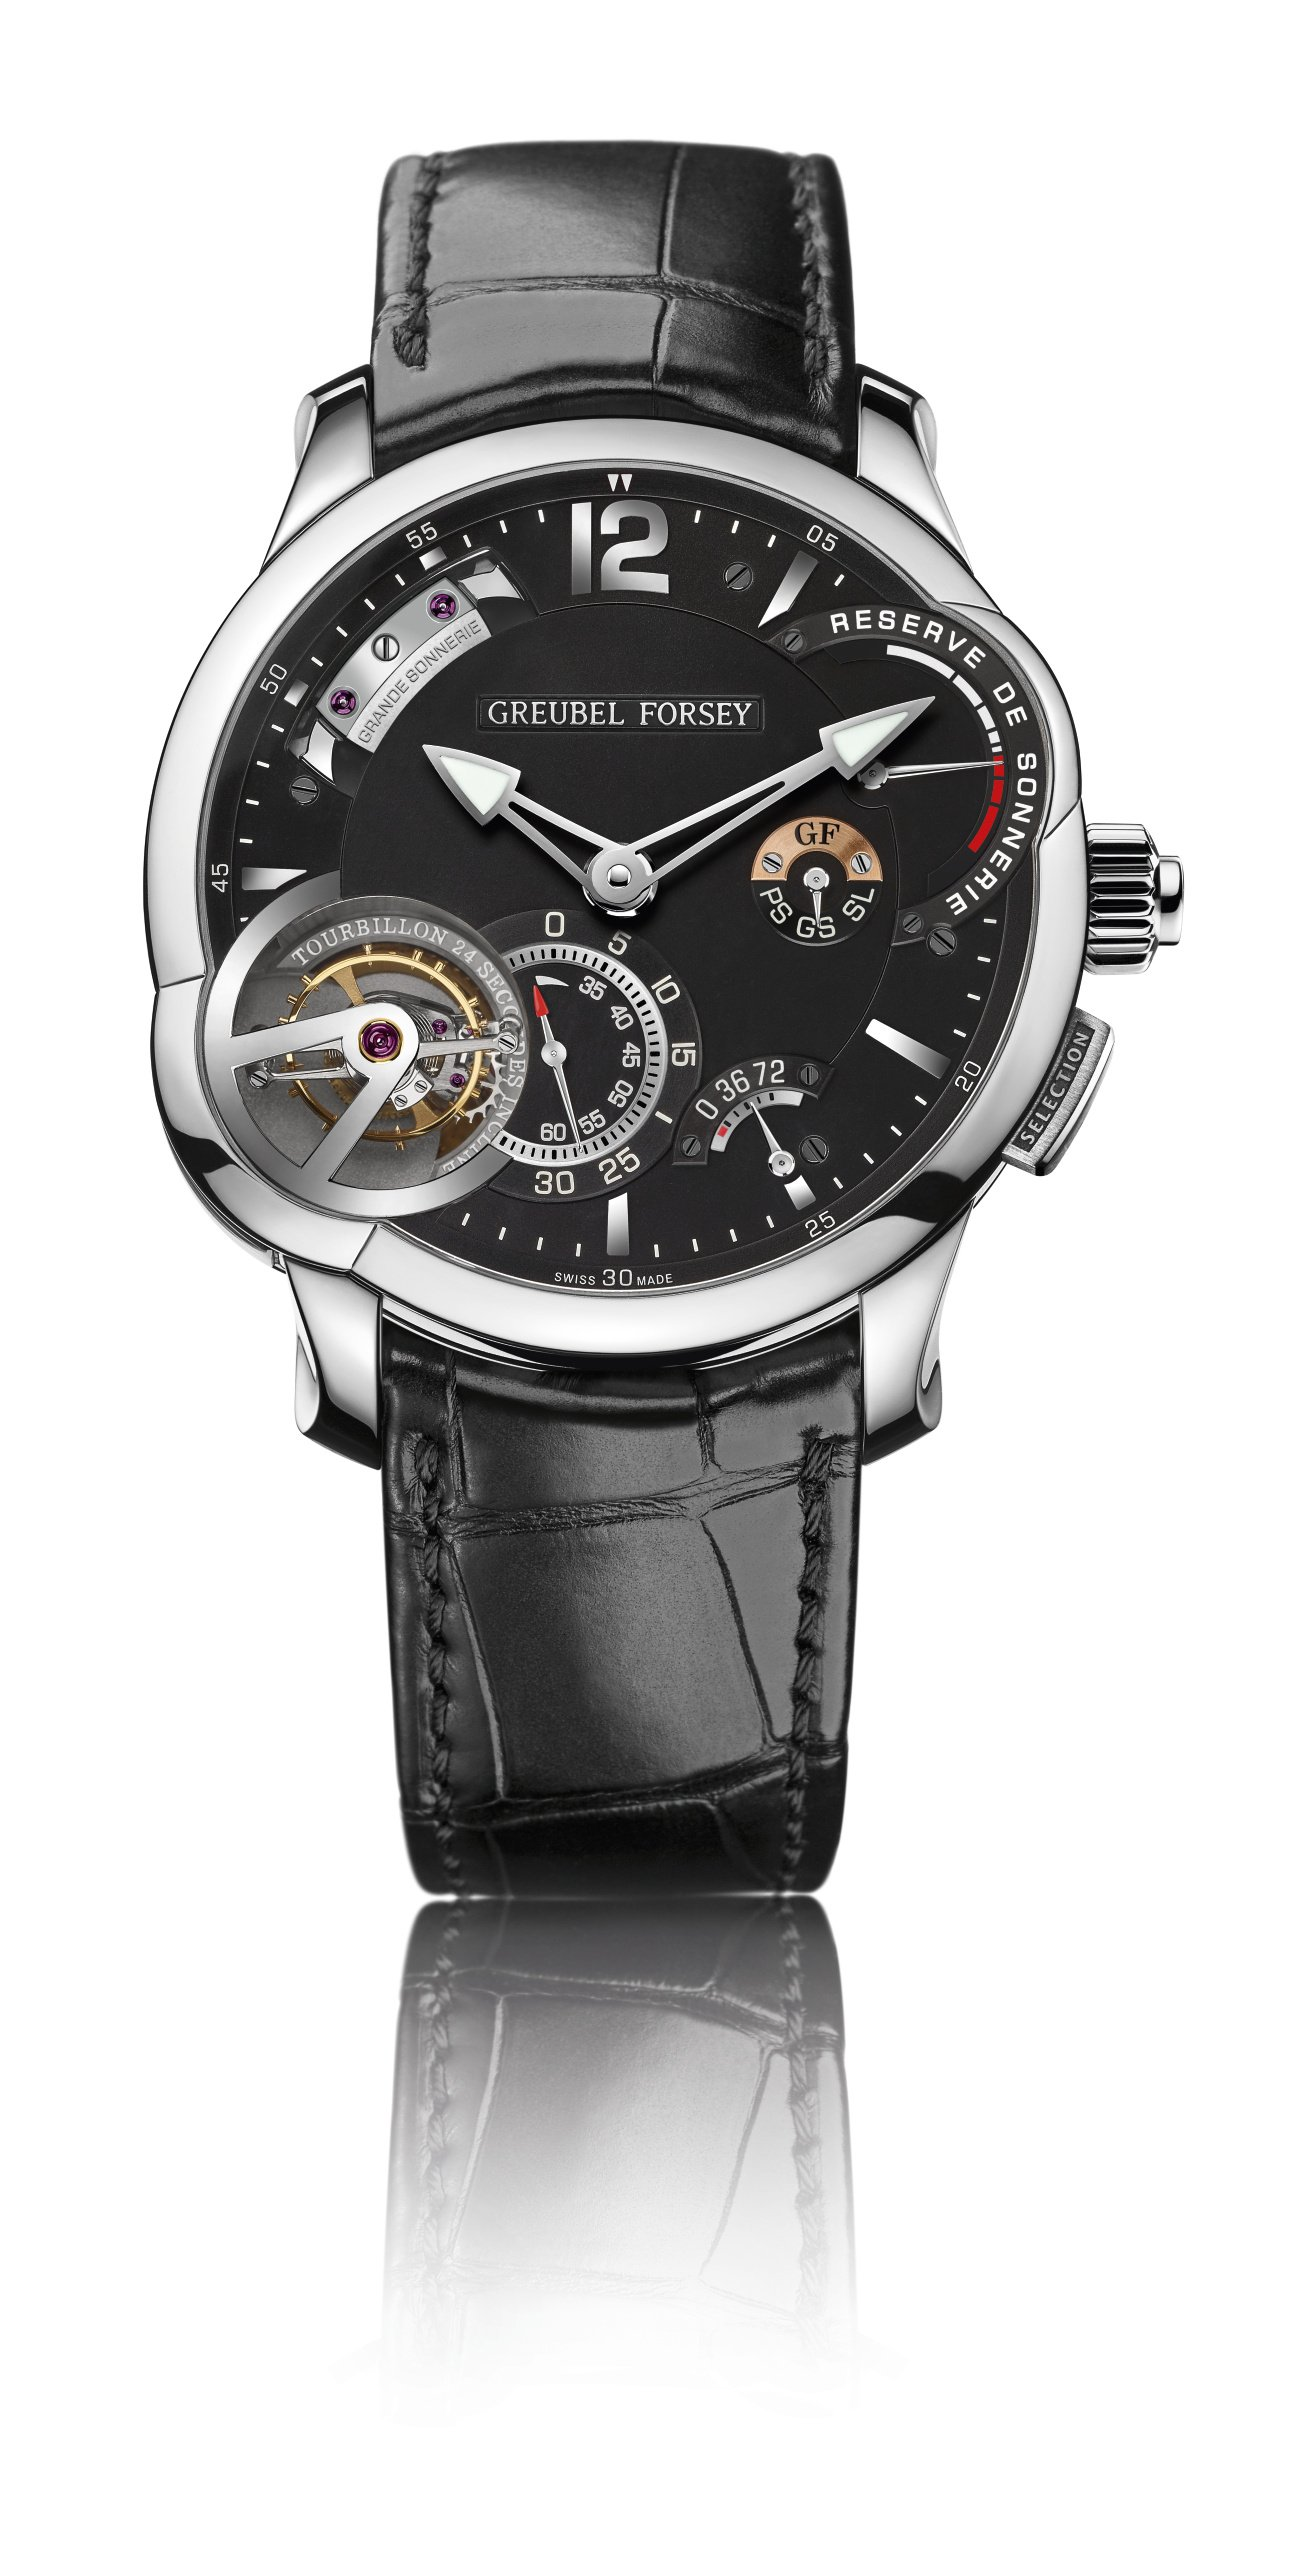 Greubel Forsey Grand Sonnerie